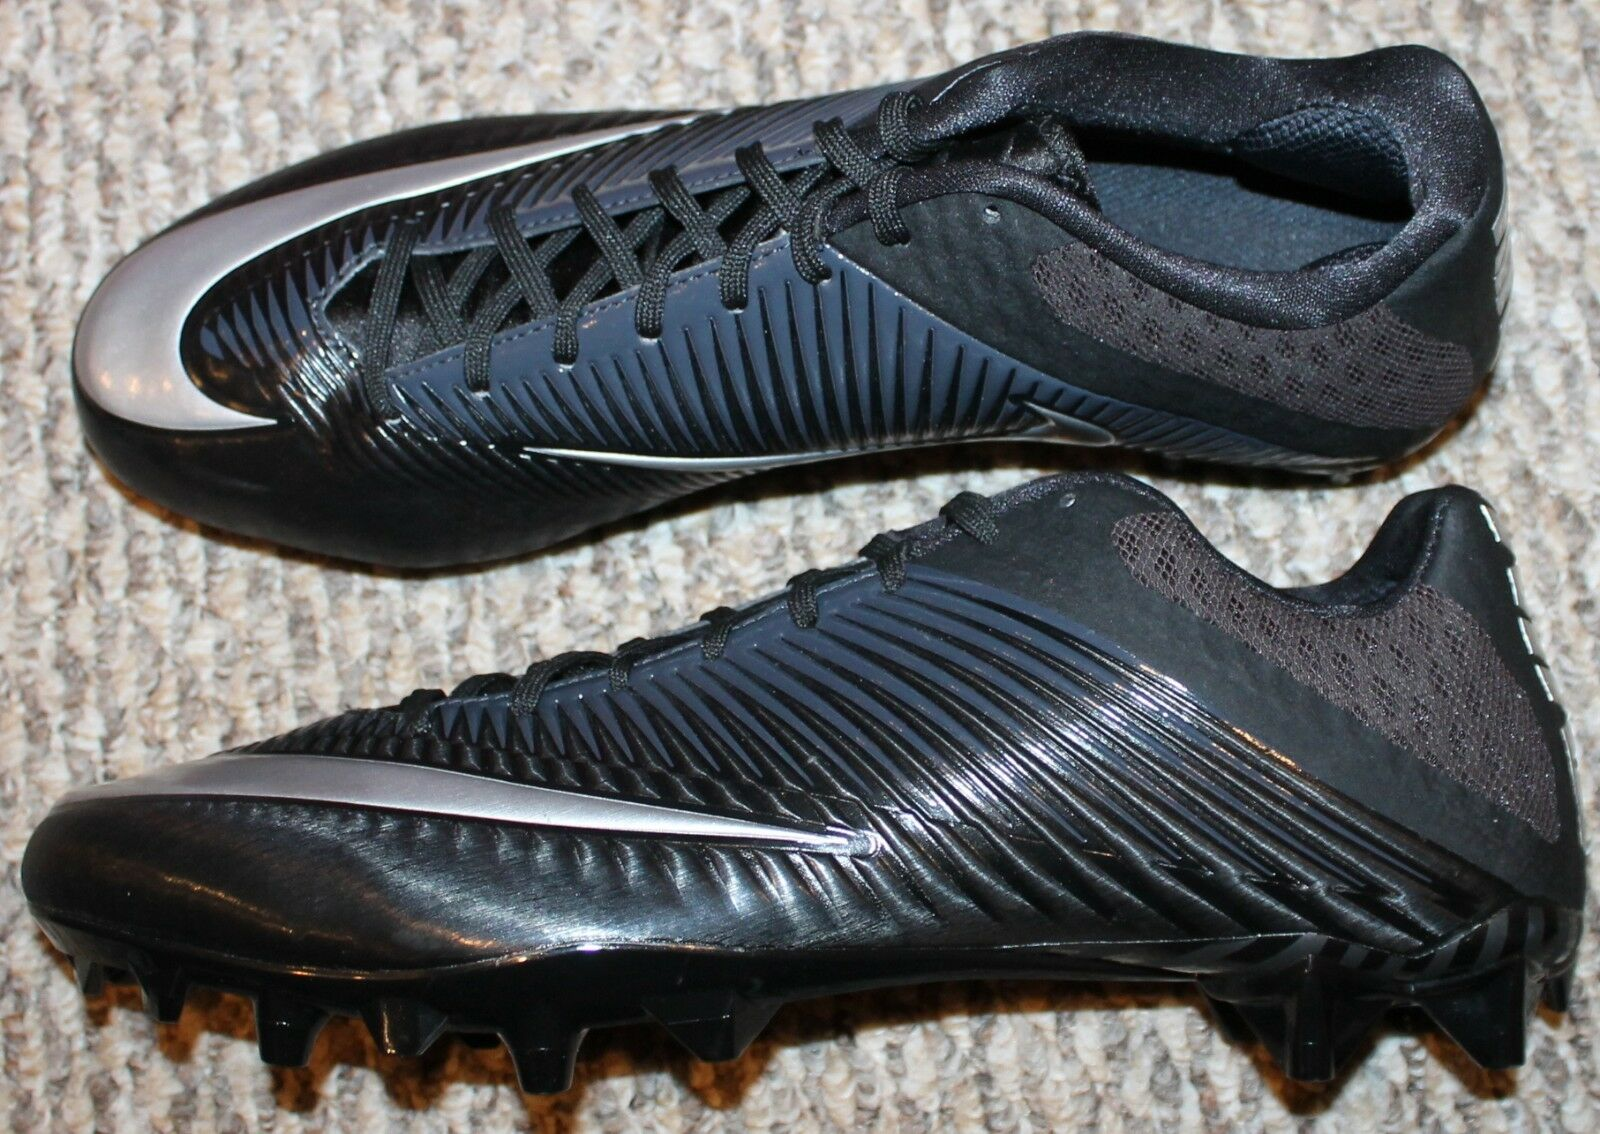 96ebd9261861 Nike Vapor Speed 2 TD Low Football Cleats Men's Size 15 Silver Black ...